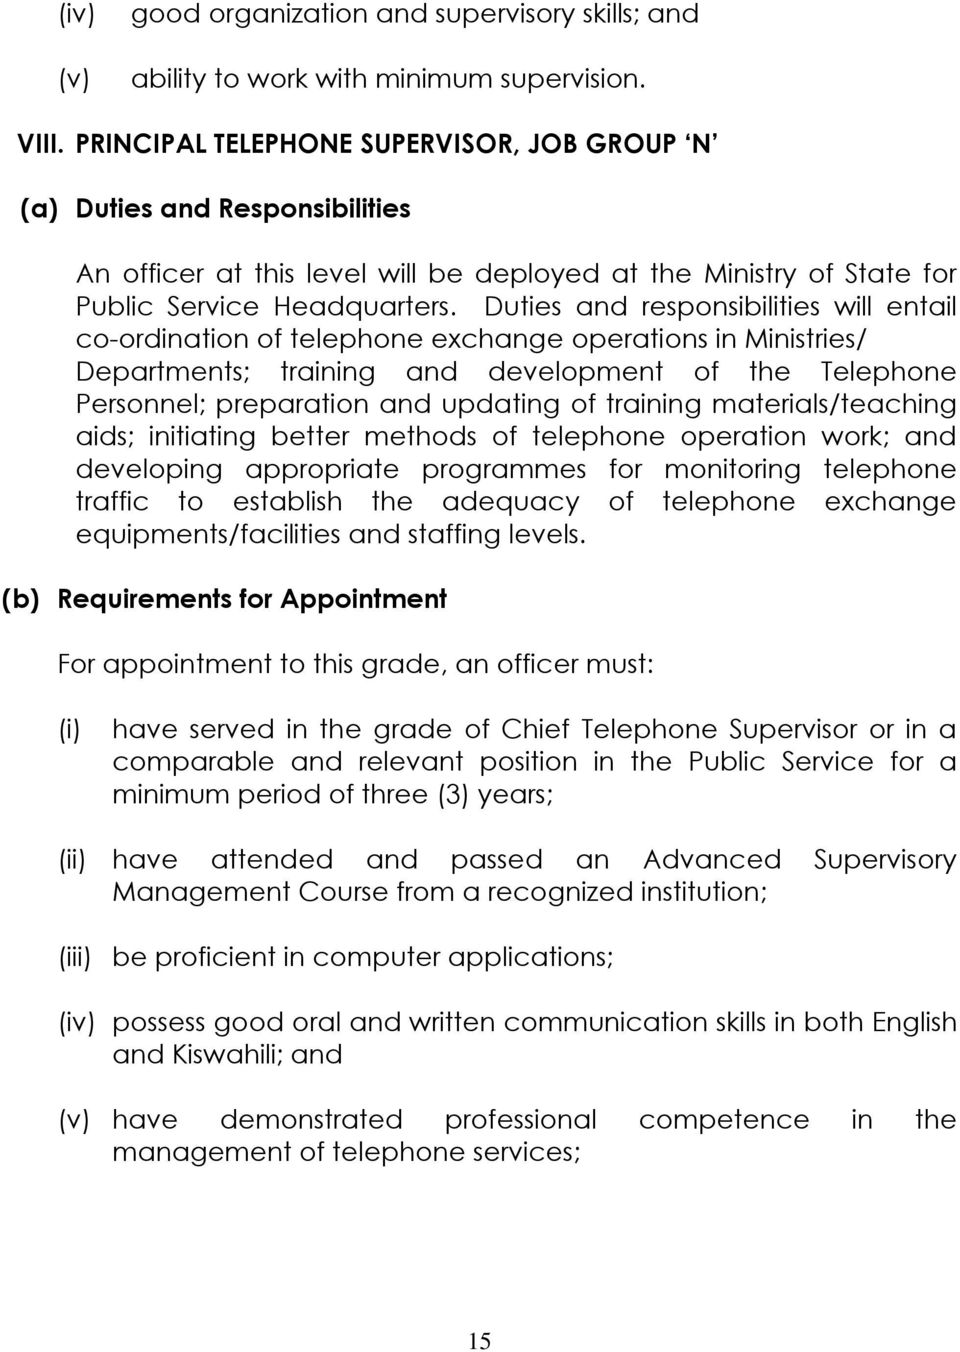 Duties and responsibilities will entail co-ordination of telephone exchange operations in Ministries/ Departments; training and development of the Telephone Personnel; preparation and updating of